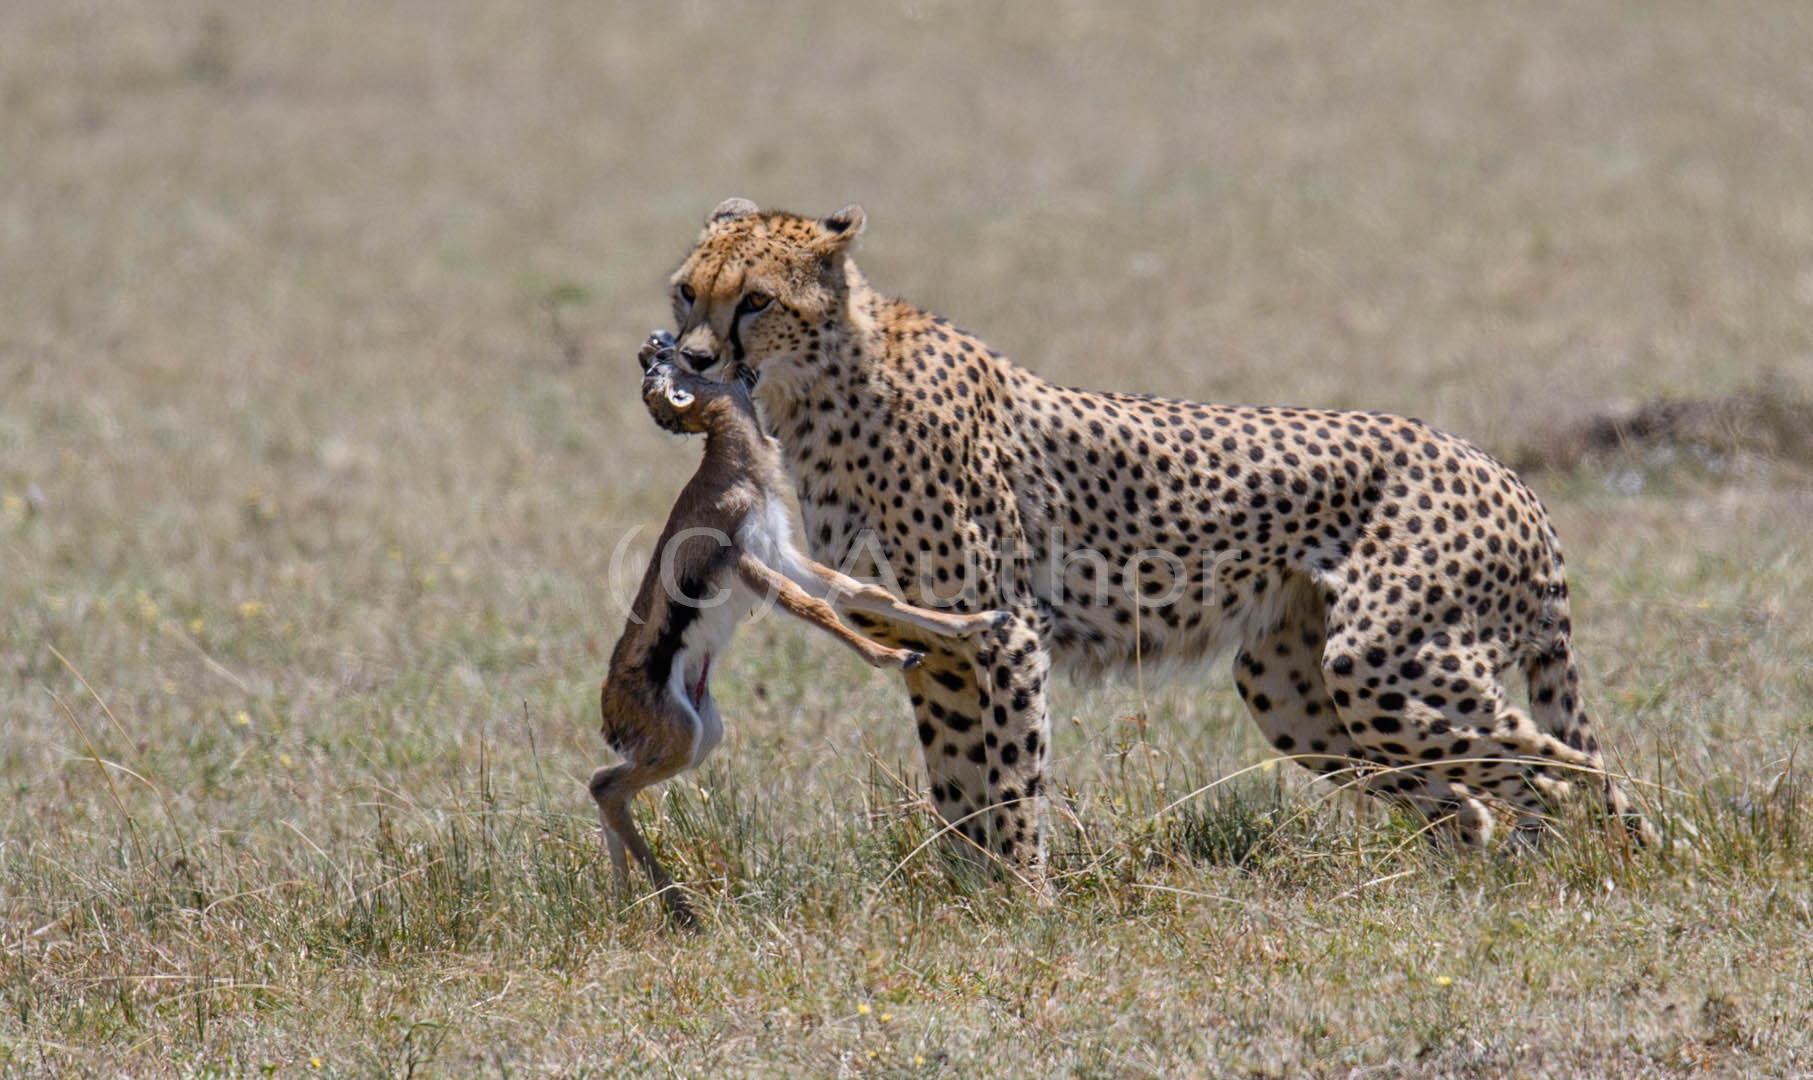 1_NA_Cheetah with prey_Gavin Duffy